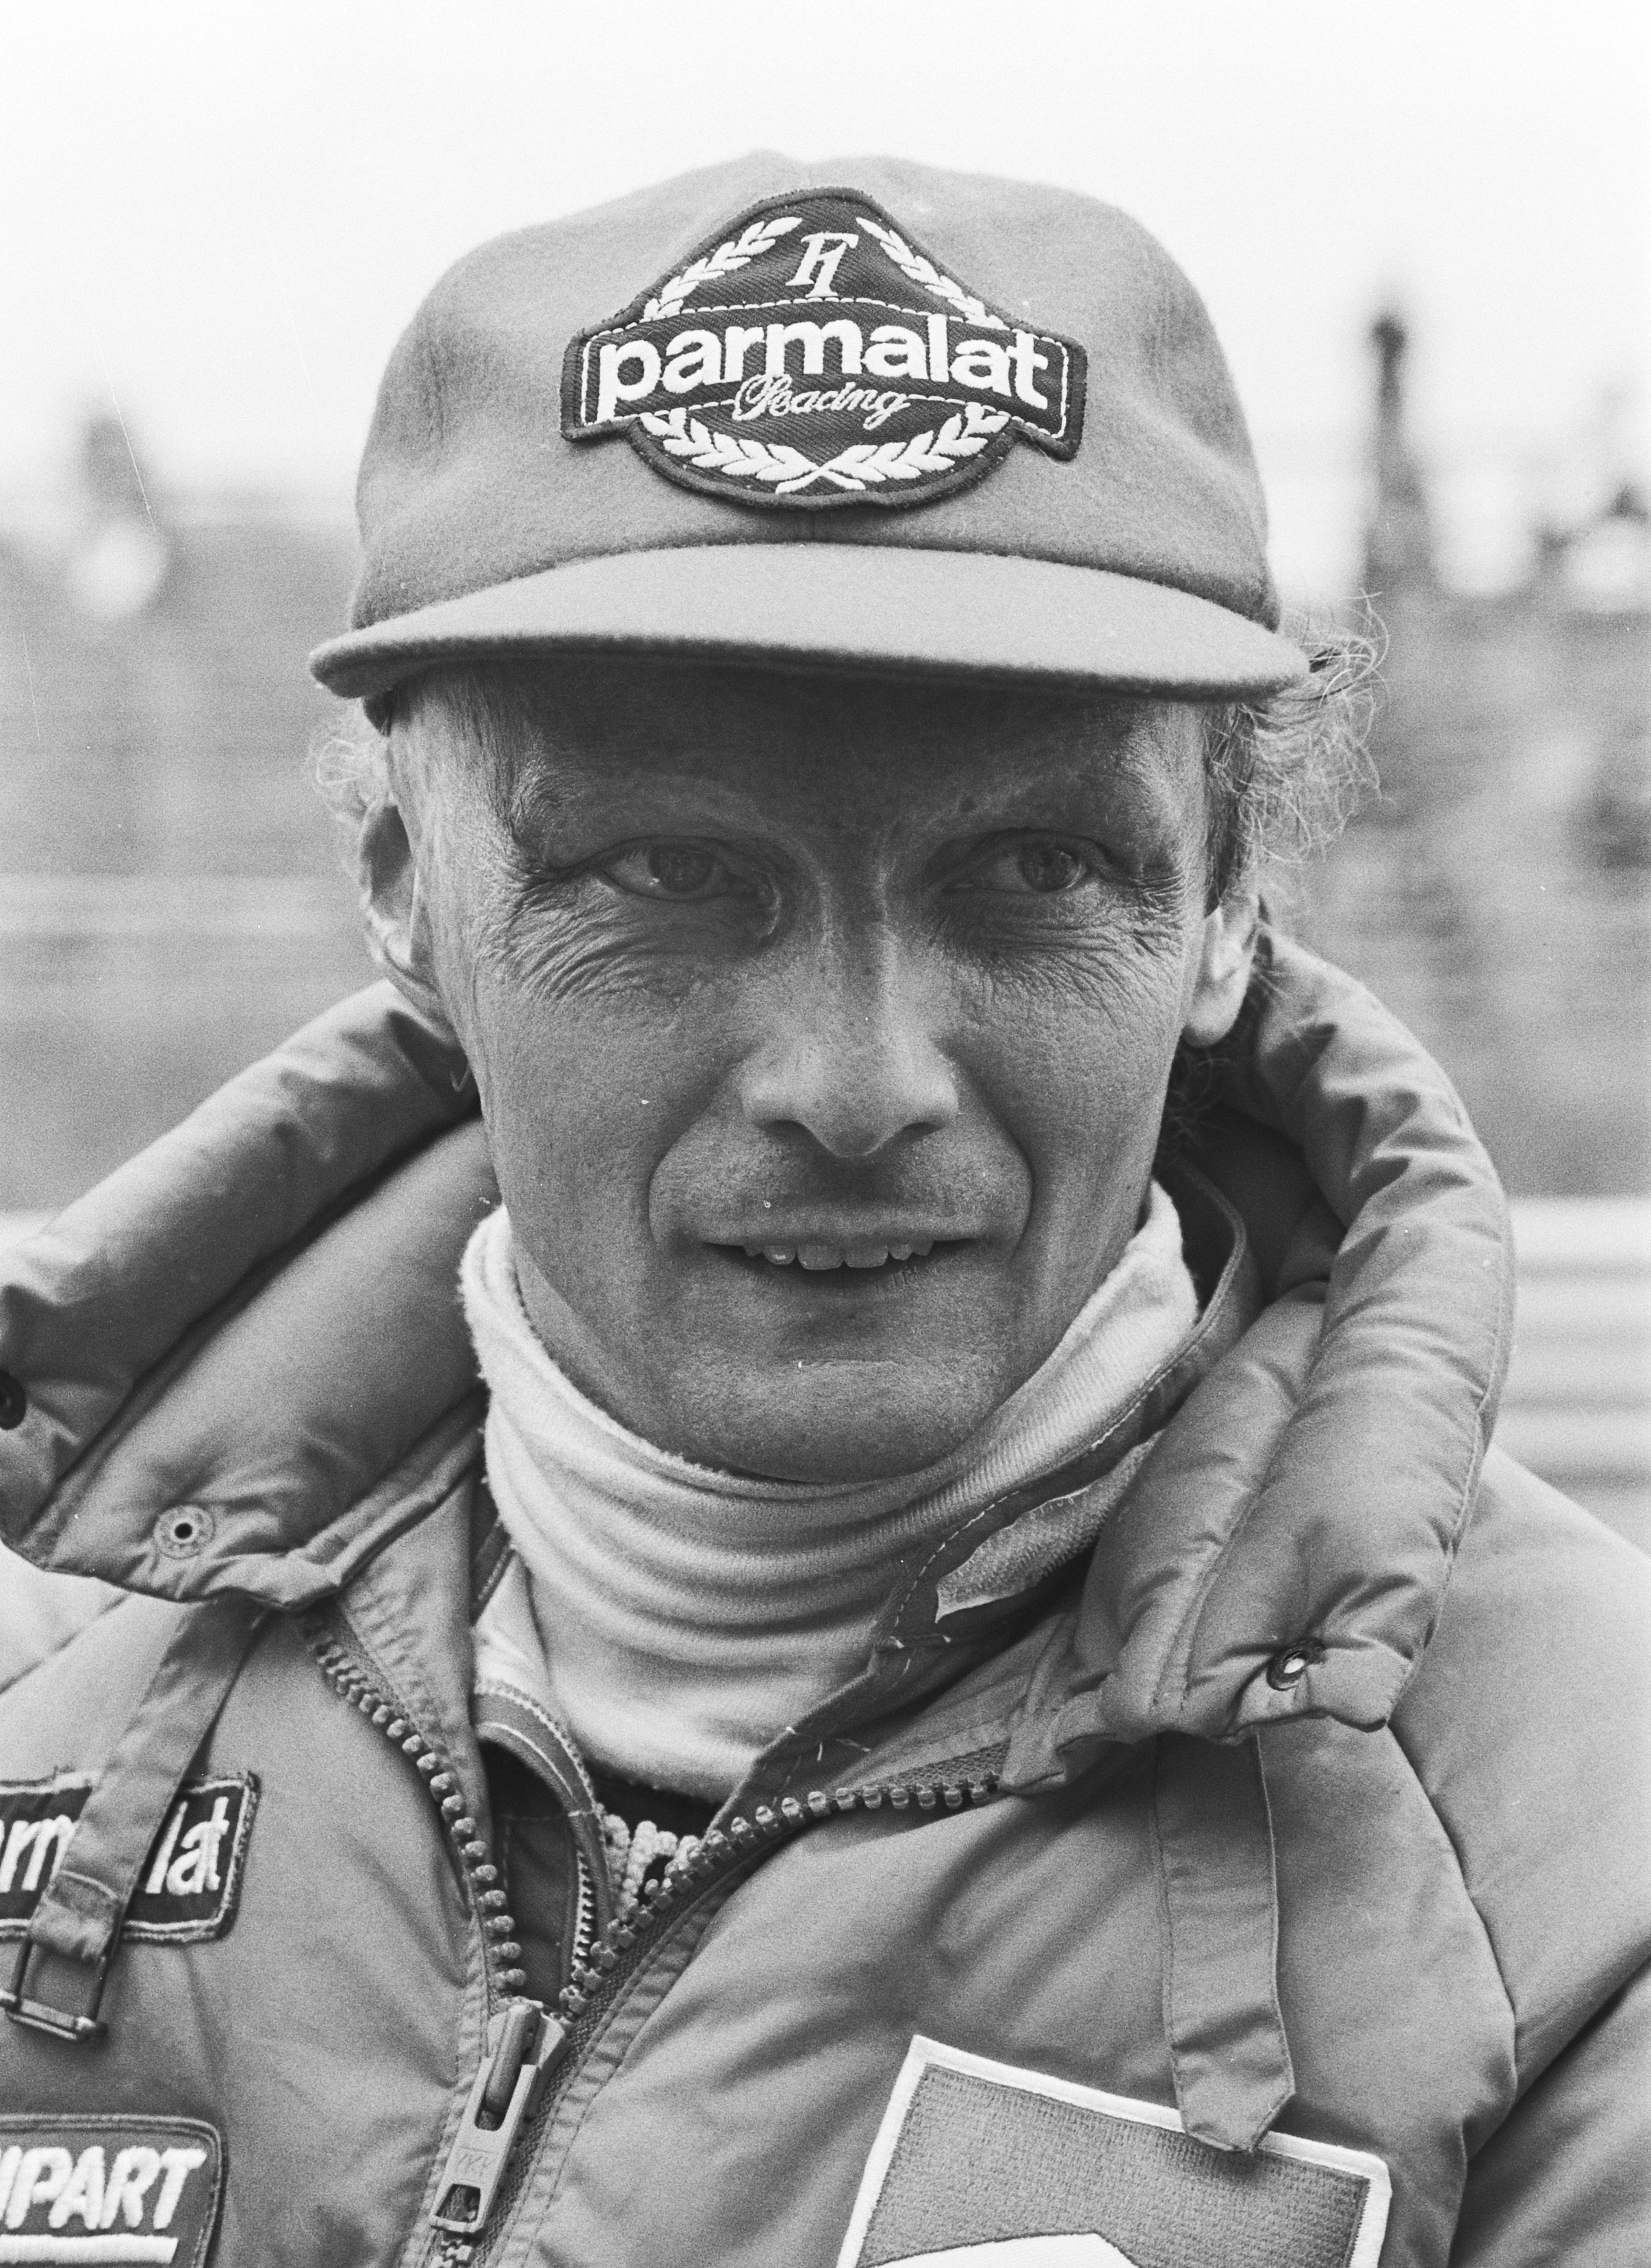 The 69-year old son of father (?) and mother(?) Niki Lauda in 2018 photo. Niki Lauda earned a  million dollar salary - leaving the net worth at 43 million in 2018